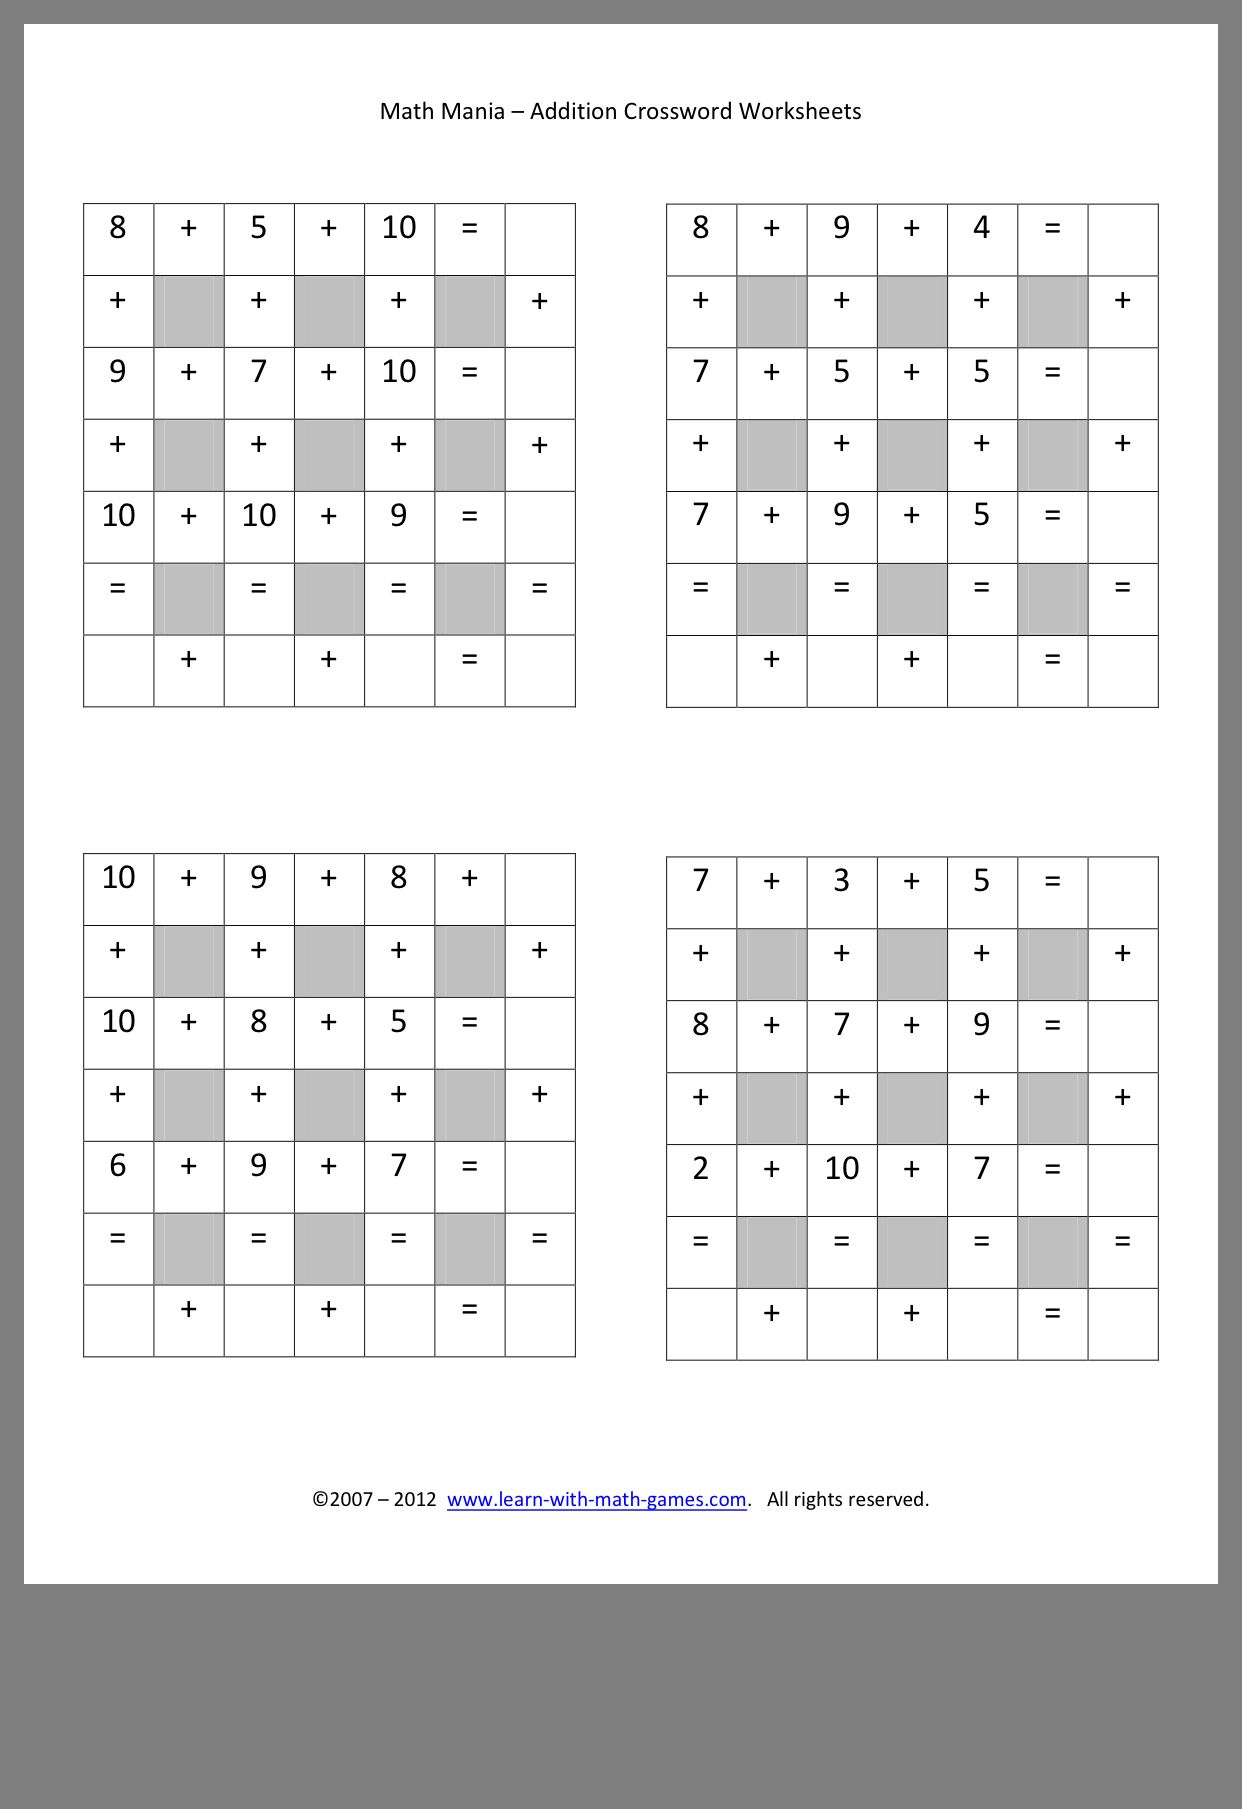 Math Worksheets Image By Mirit On Math Worksheets